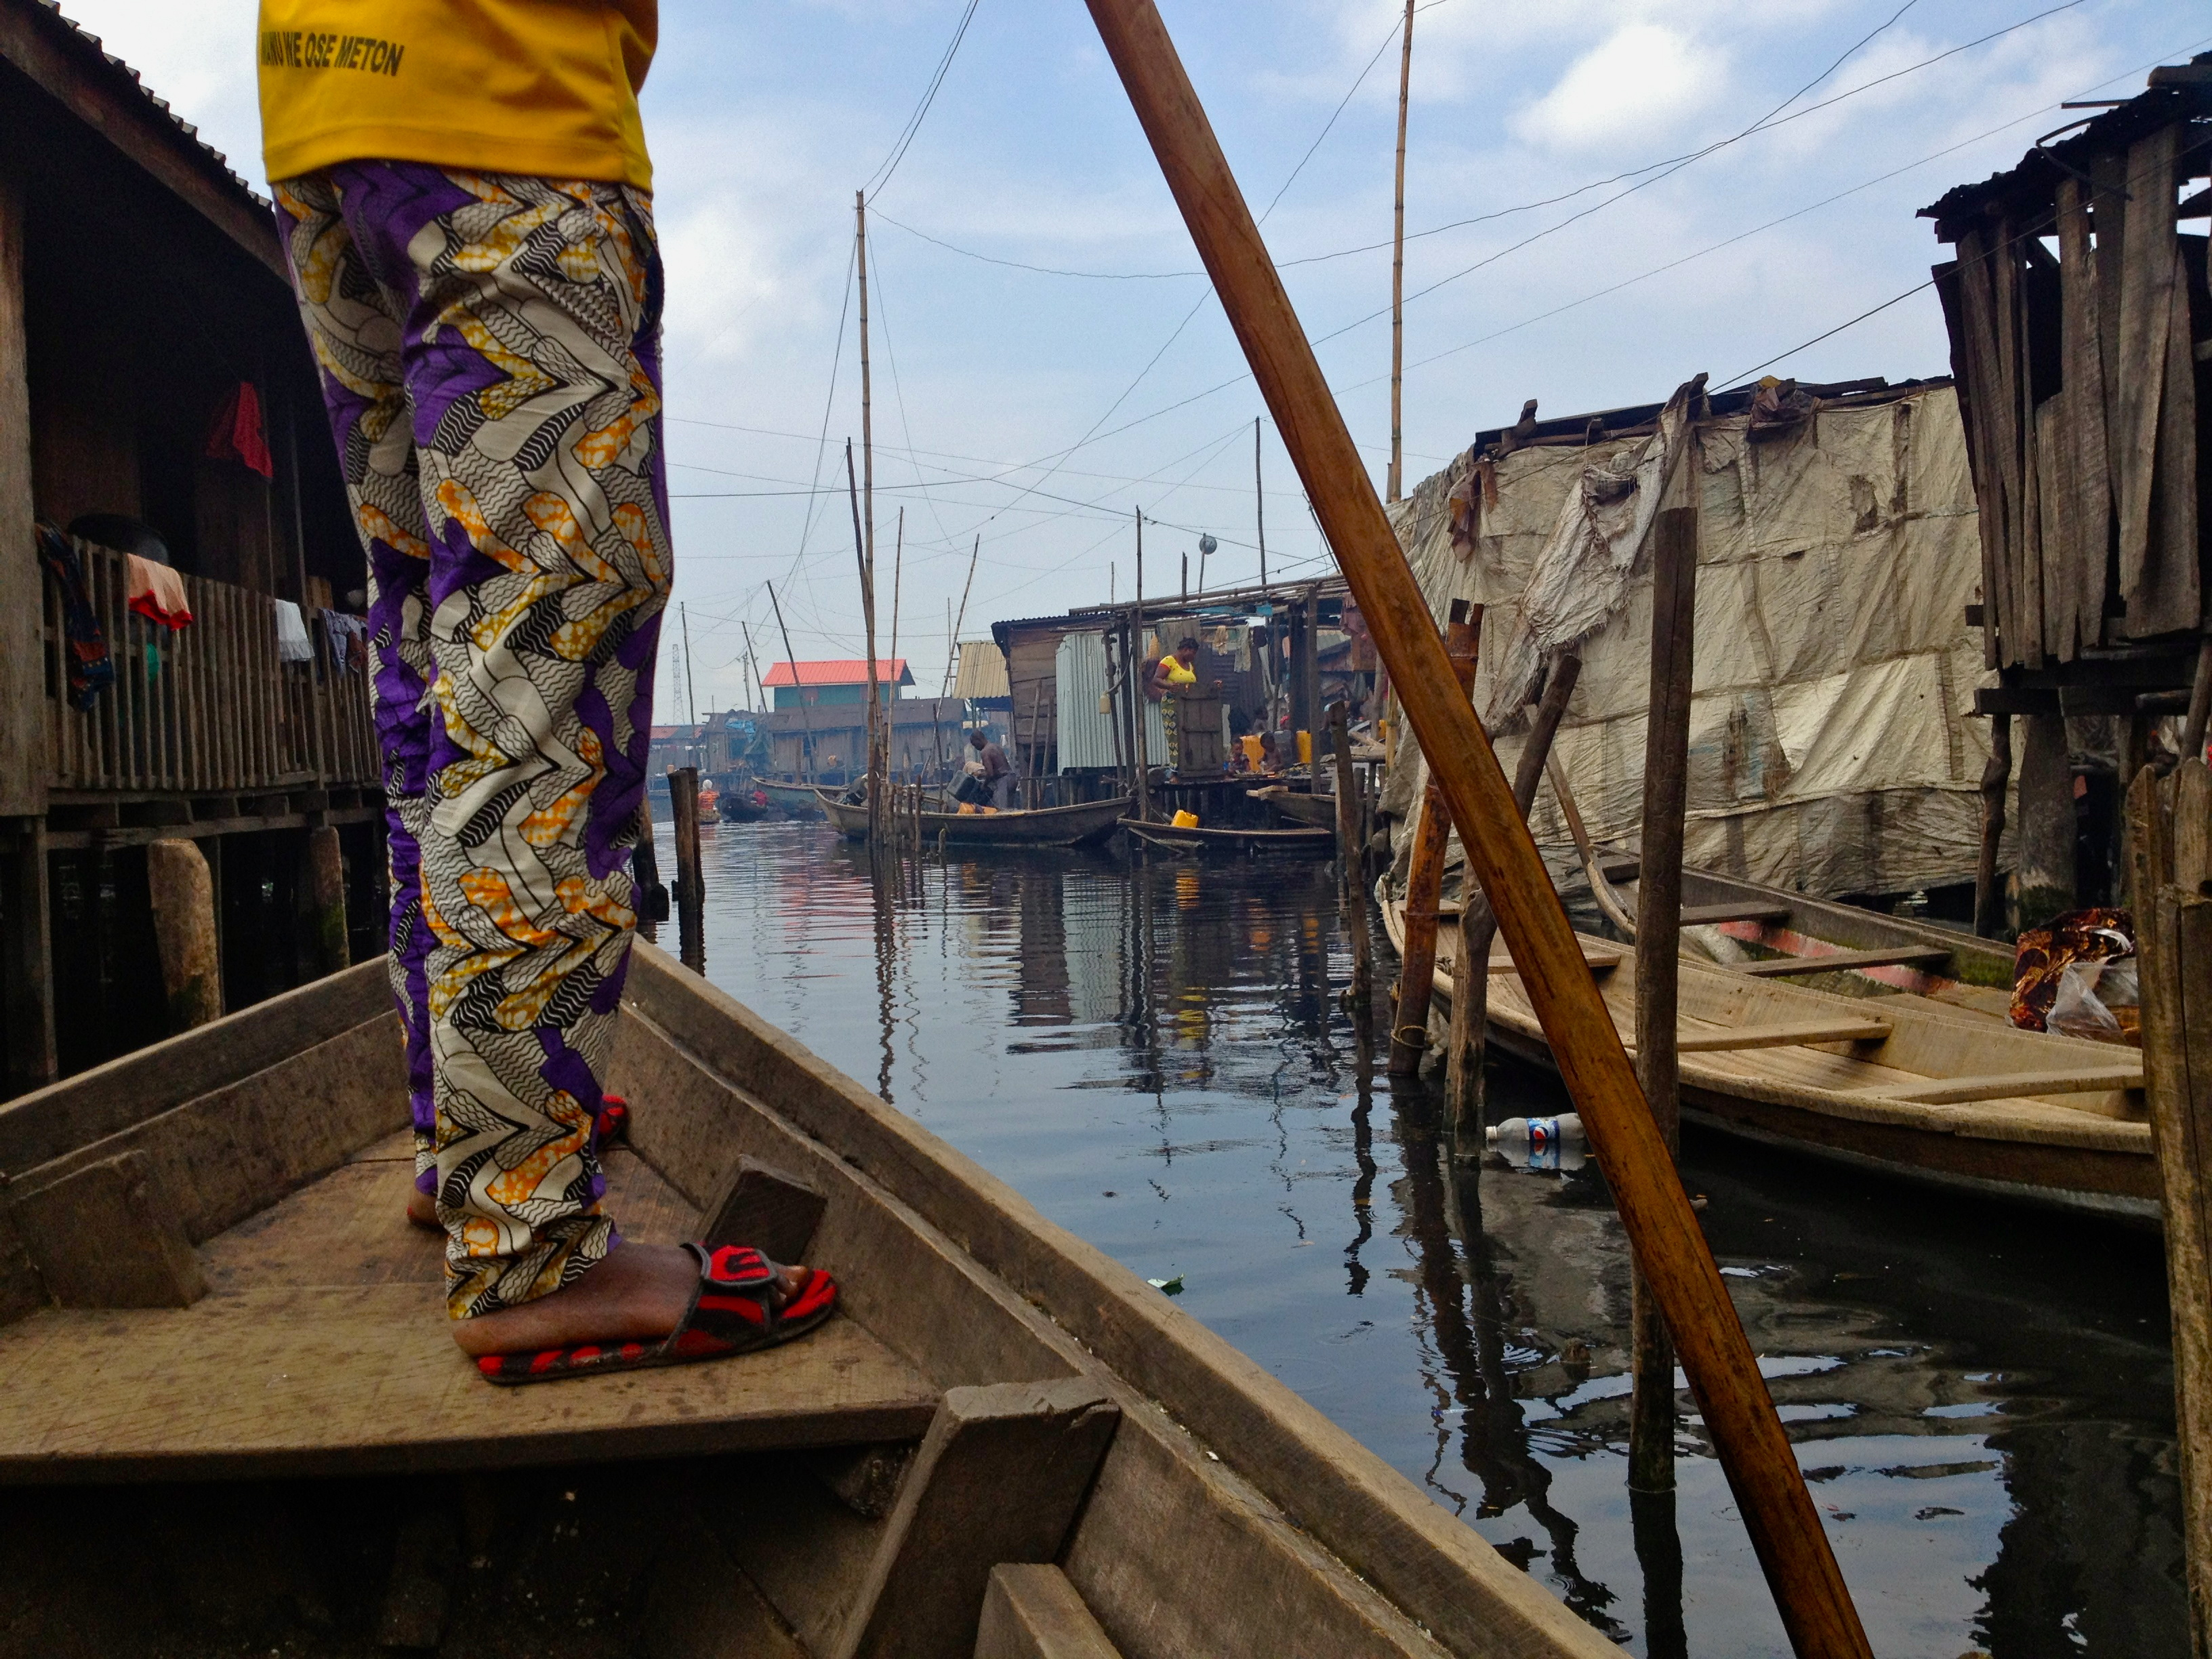 Going through Makoko Image: Authors own